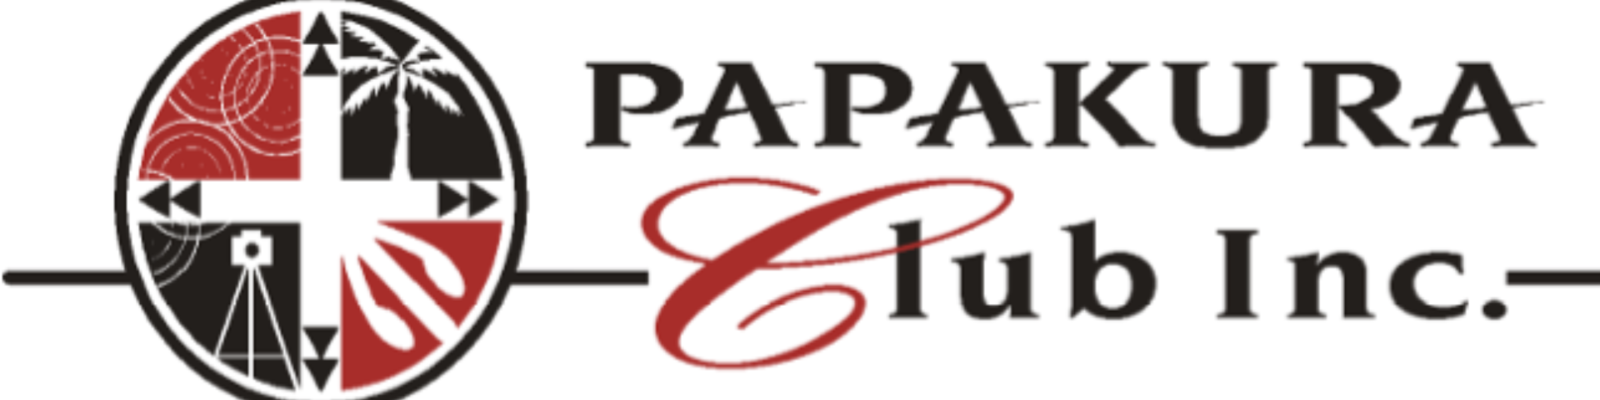 Papakura Club